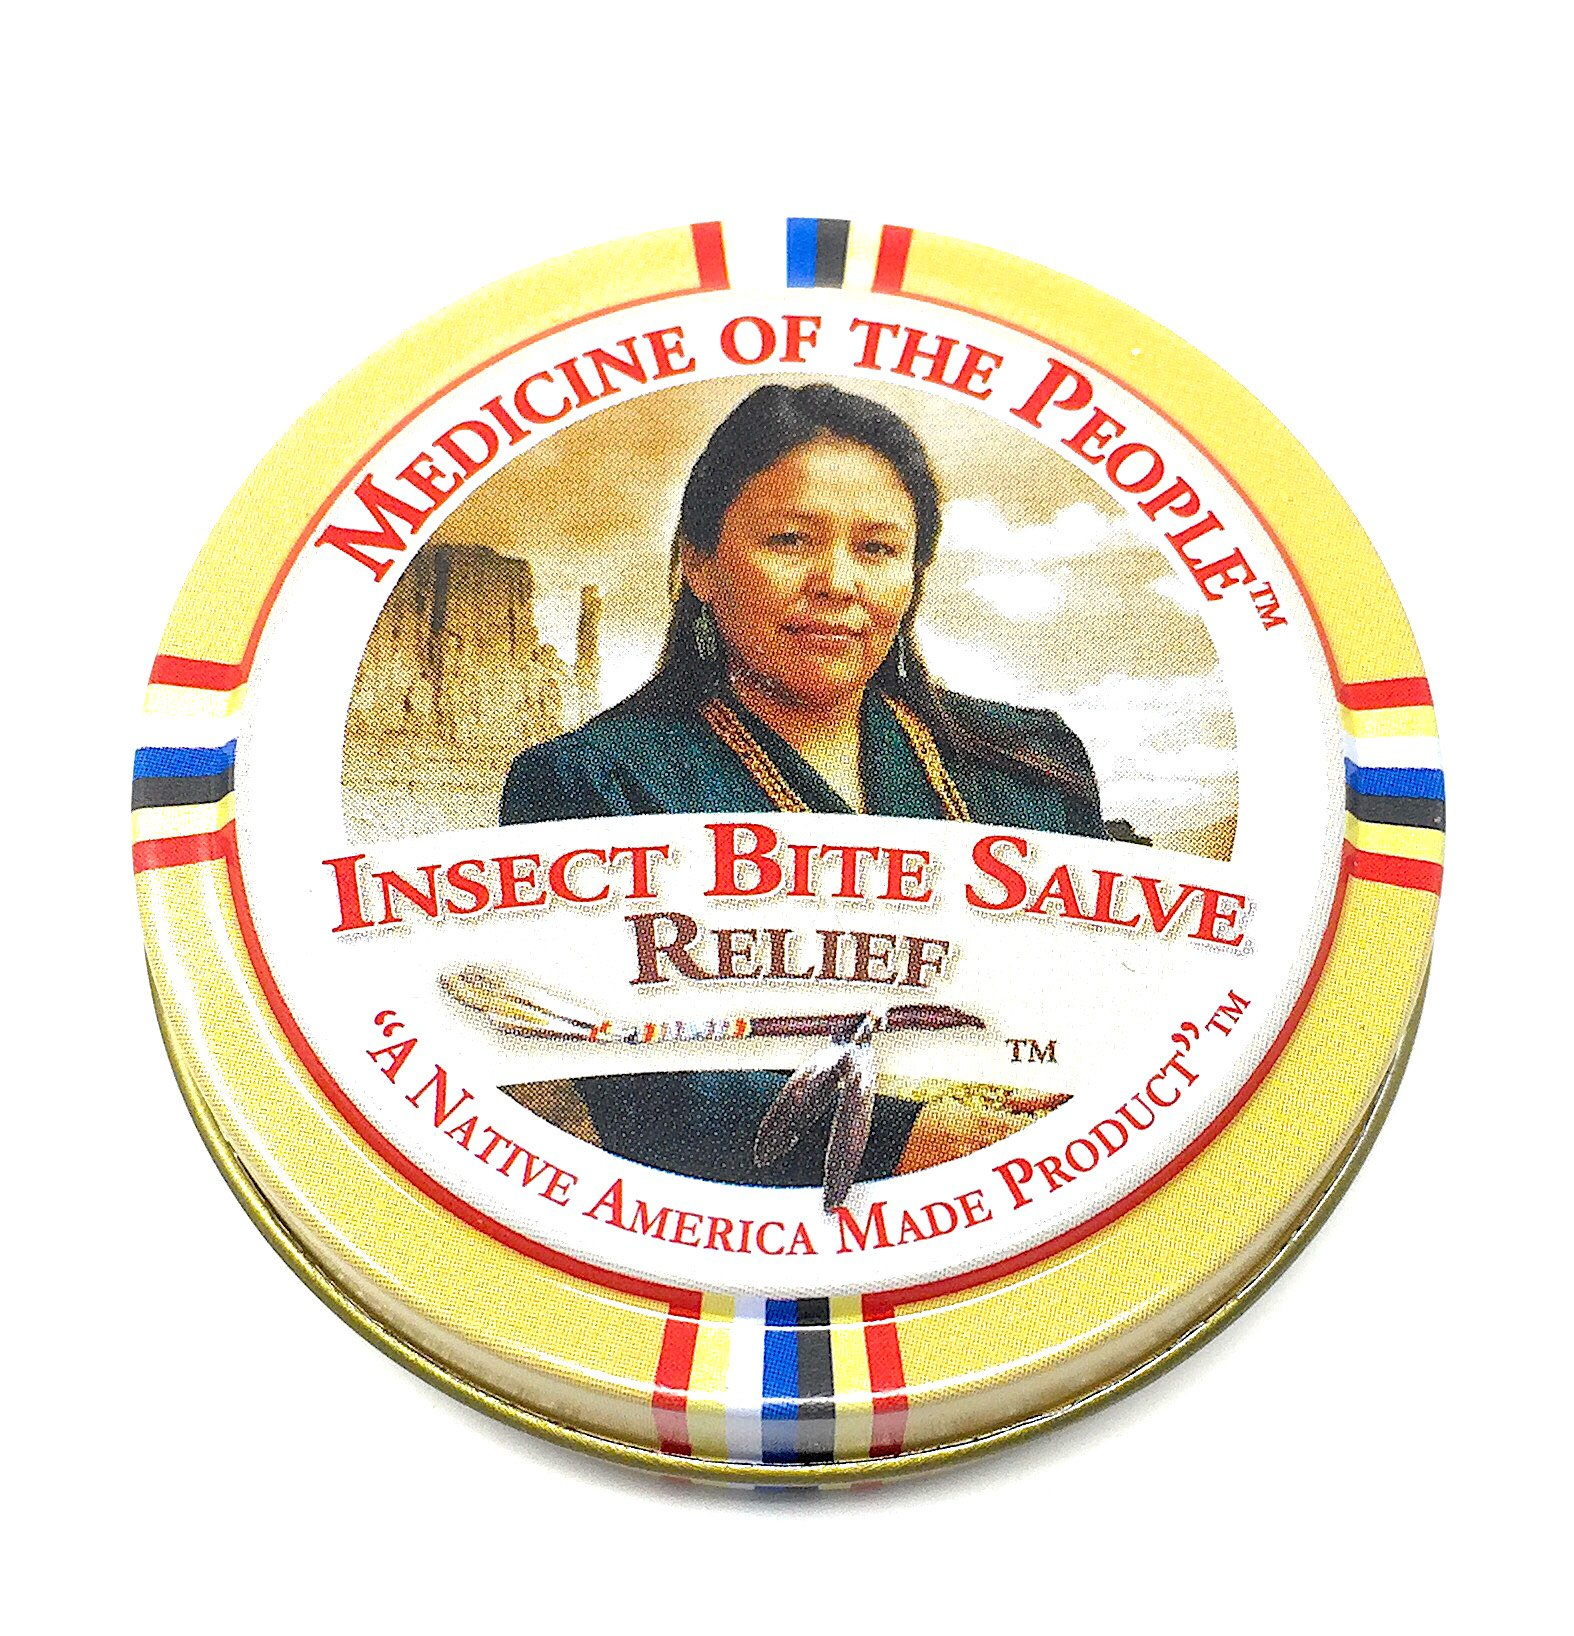 Insect Bite Salve for Alleviating Pain, Swelling and Itching by Medicine of the People .75 oz (Pack of 3 Tins) by Medicine of the People